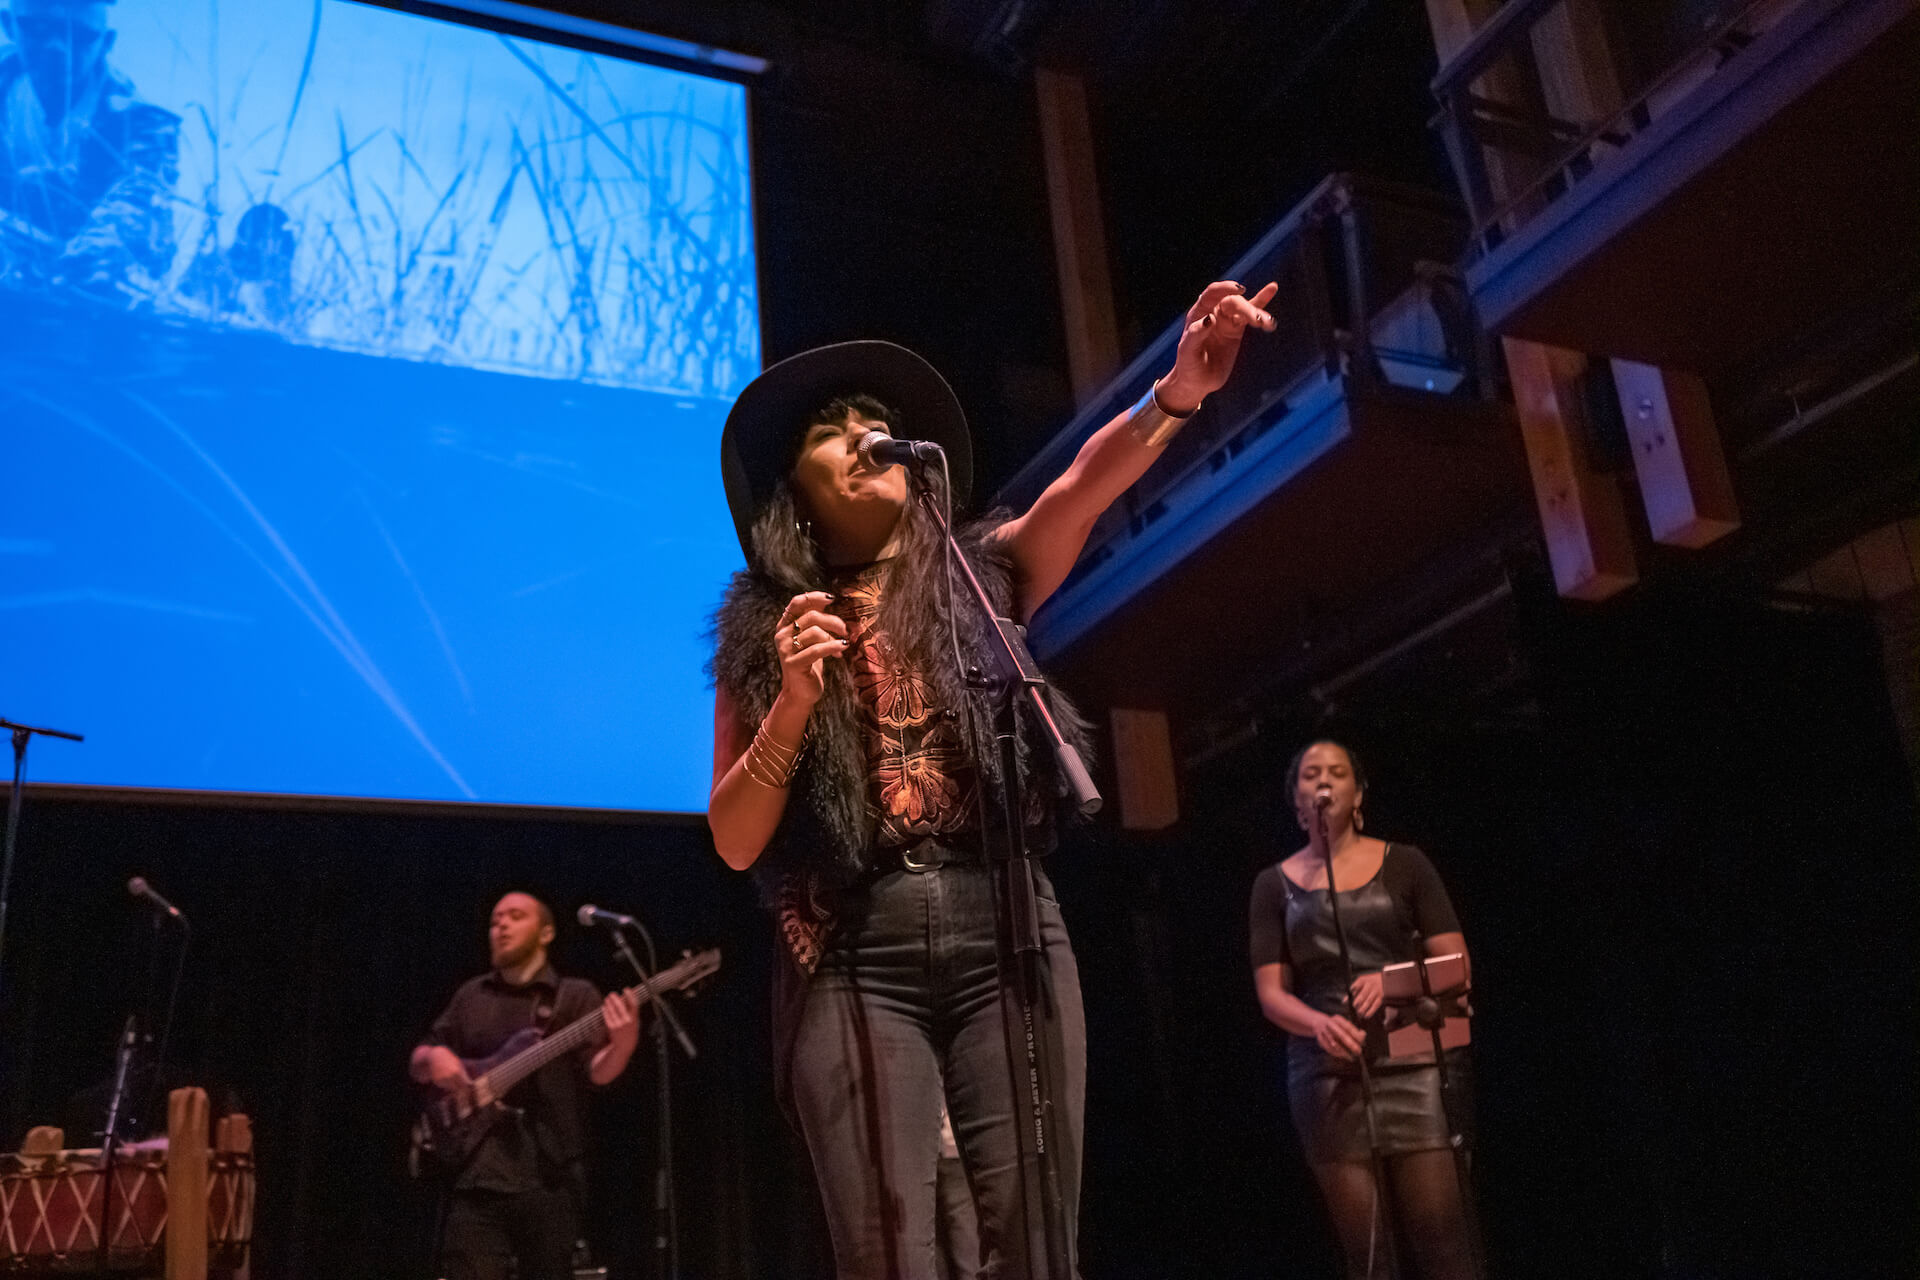 ShoShona Kish (centre) of Digging Roots performs during the Gchi Dewin Indigenous Storytellers Festival at the Charles W. Stockey Centre for the Performing Arts in Parry Sound, a co-presentation by MUSKRAT Magazine and ReZ 91.3 FM. (Photo: Robert Snache)